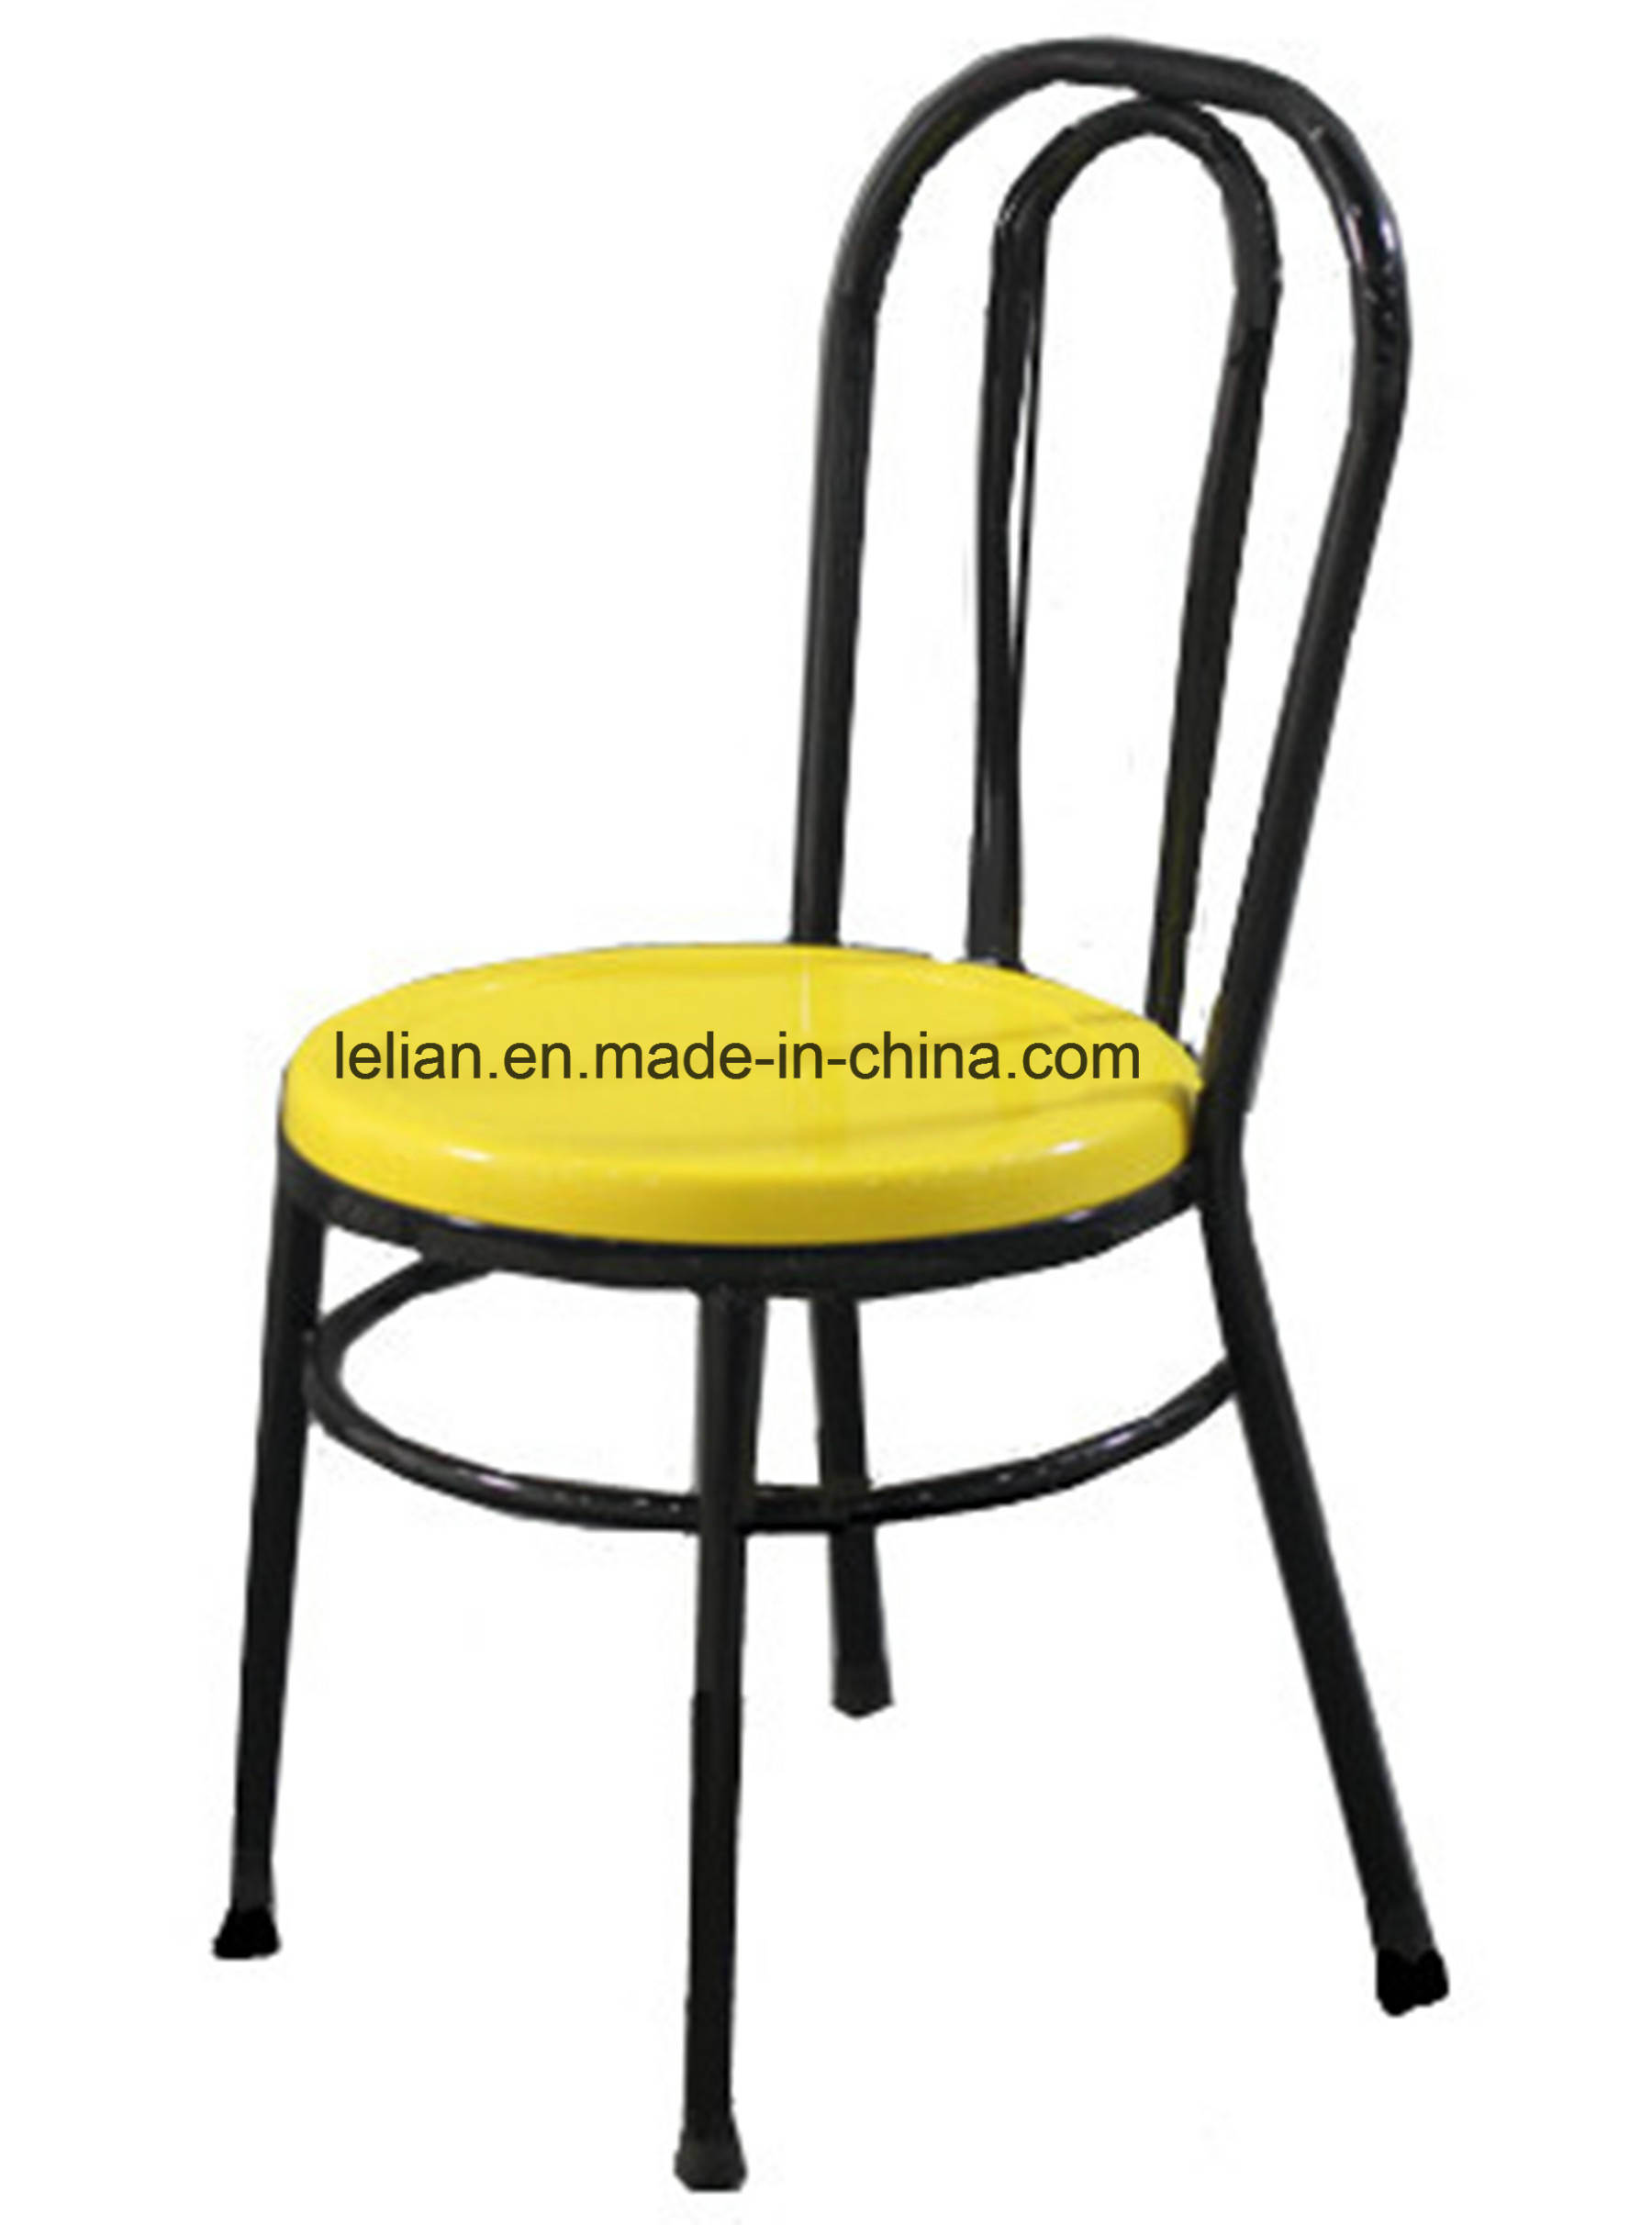 Fiber glass dining chair with metal leg for garden furniture ll dc007